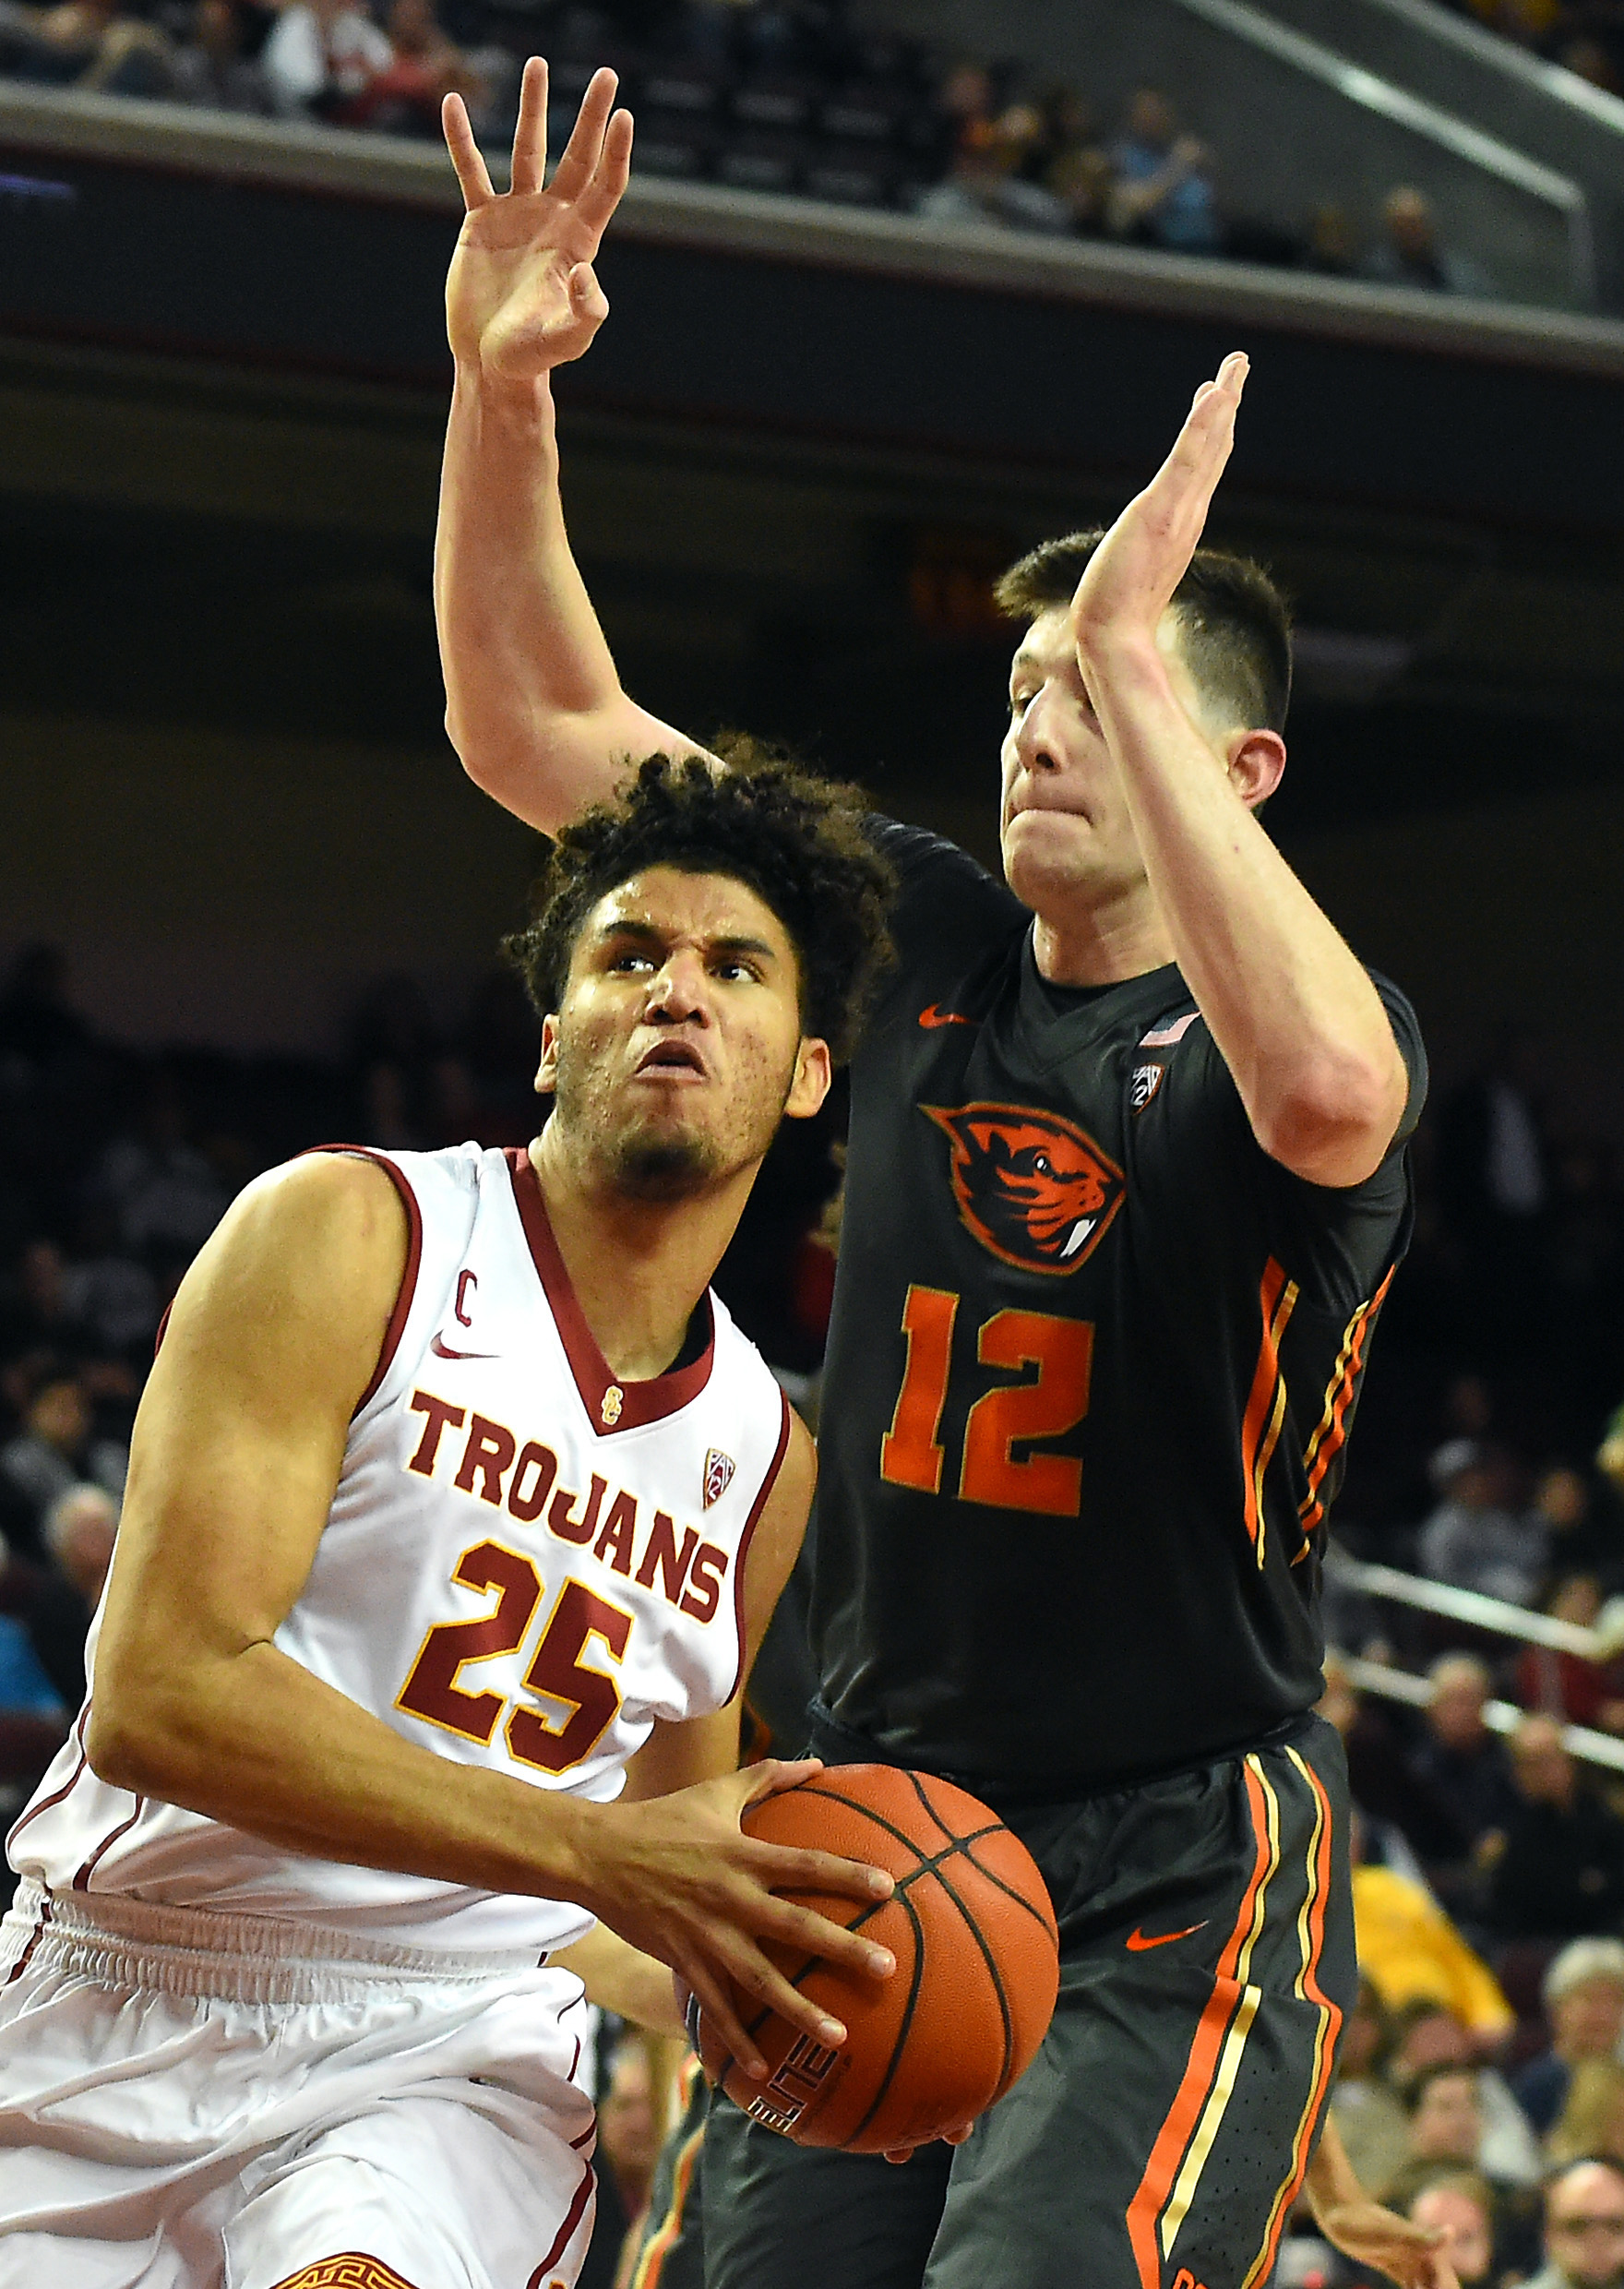 Feb 9, 2017; Los Angeles, CA, USA; Oregon State Beavers forward Drew Eubanks (12) guards USC Trojans forward Bennie Boatwright (25) as he drives to the basket in the first half of the game at Galen Center. Mandatory Credit: Jayne Kamin-Oncea-USA TODAY Sports